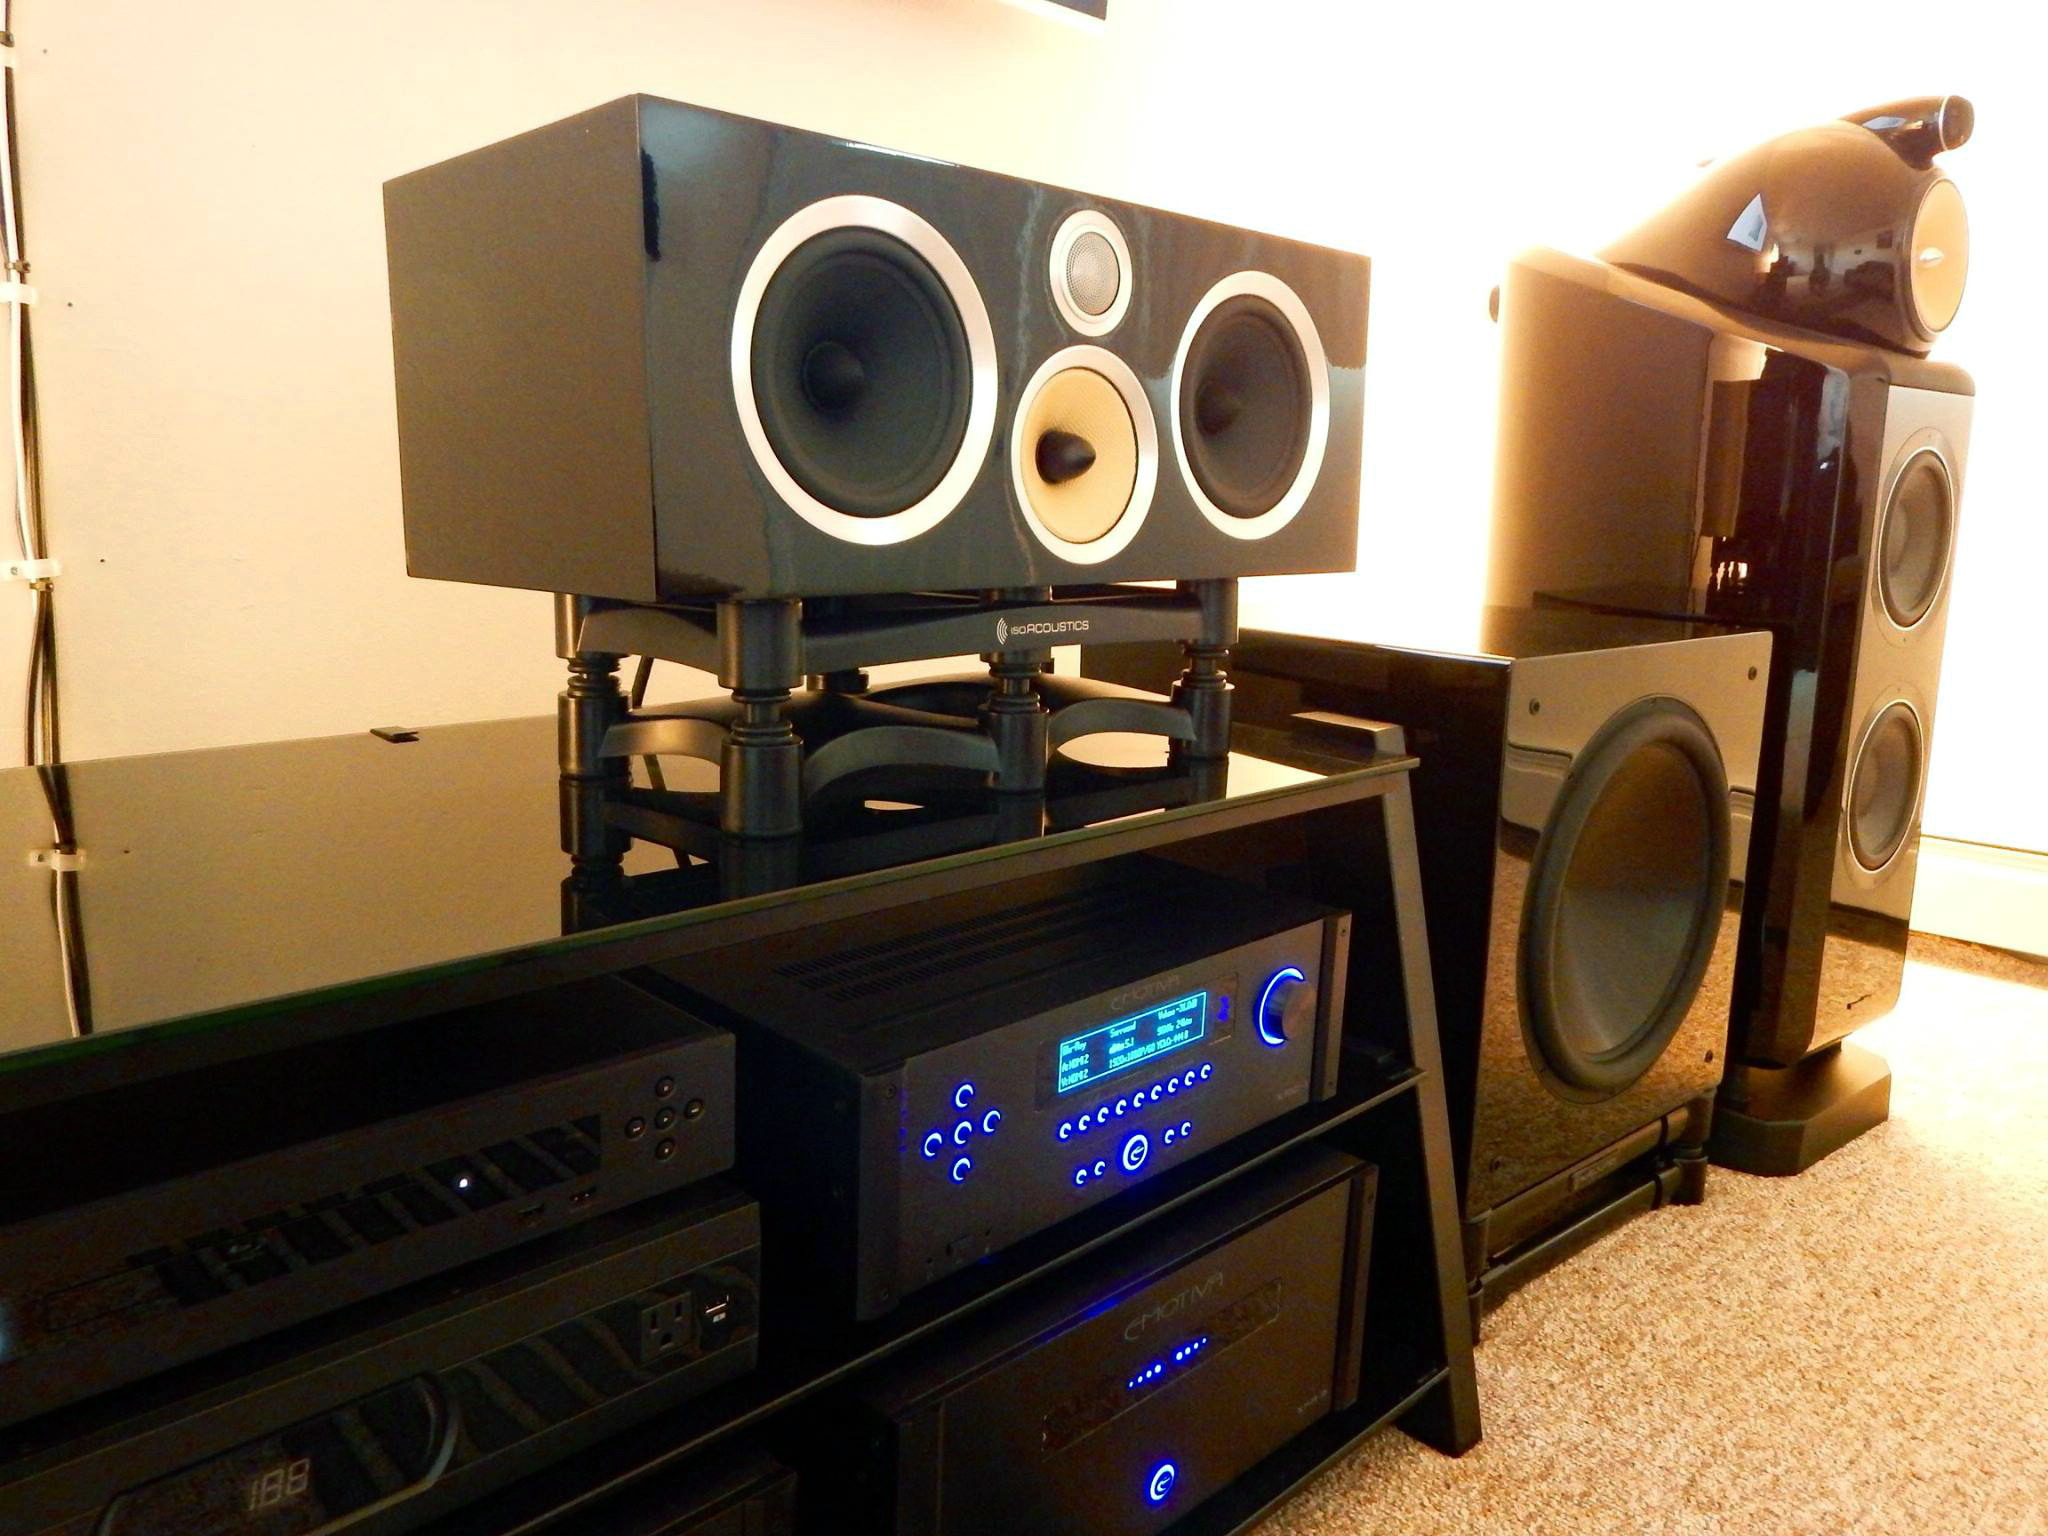 Home theater system speakers.